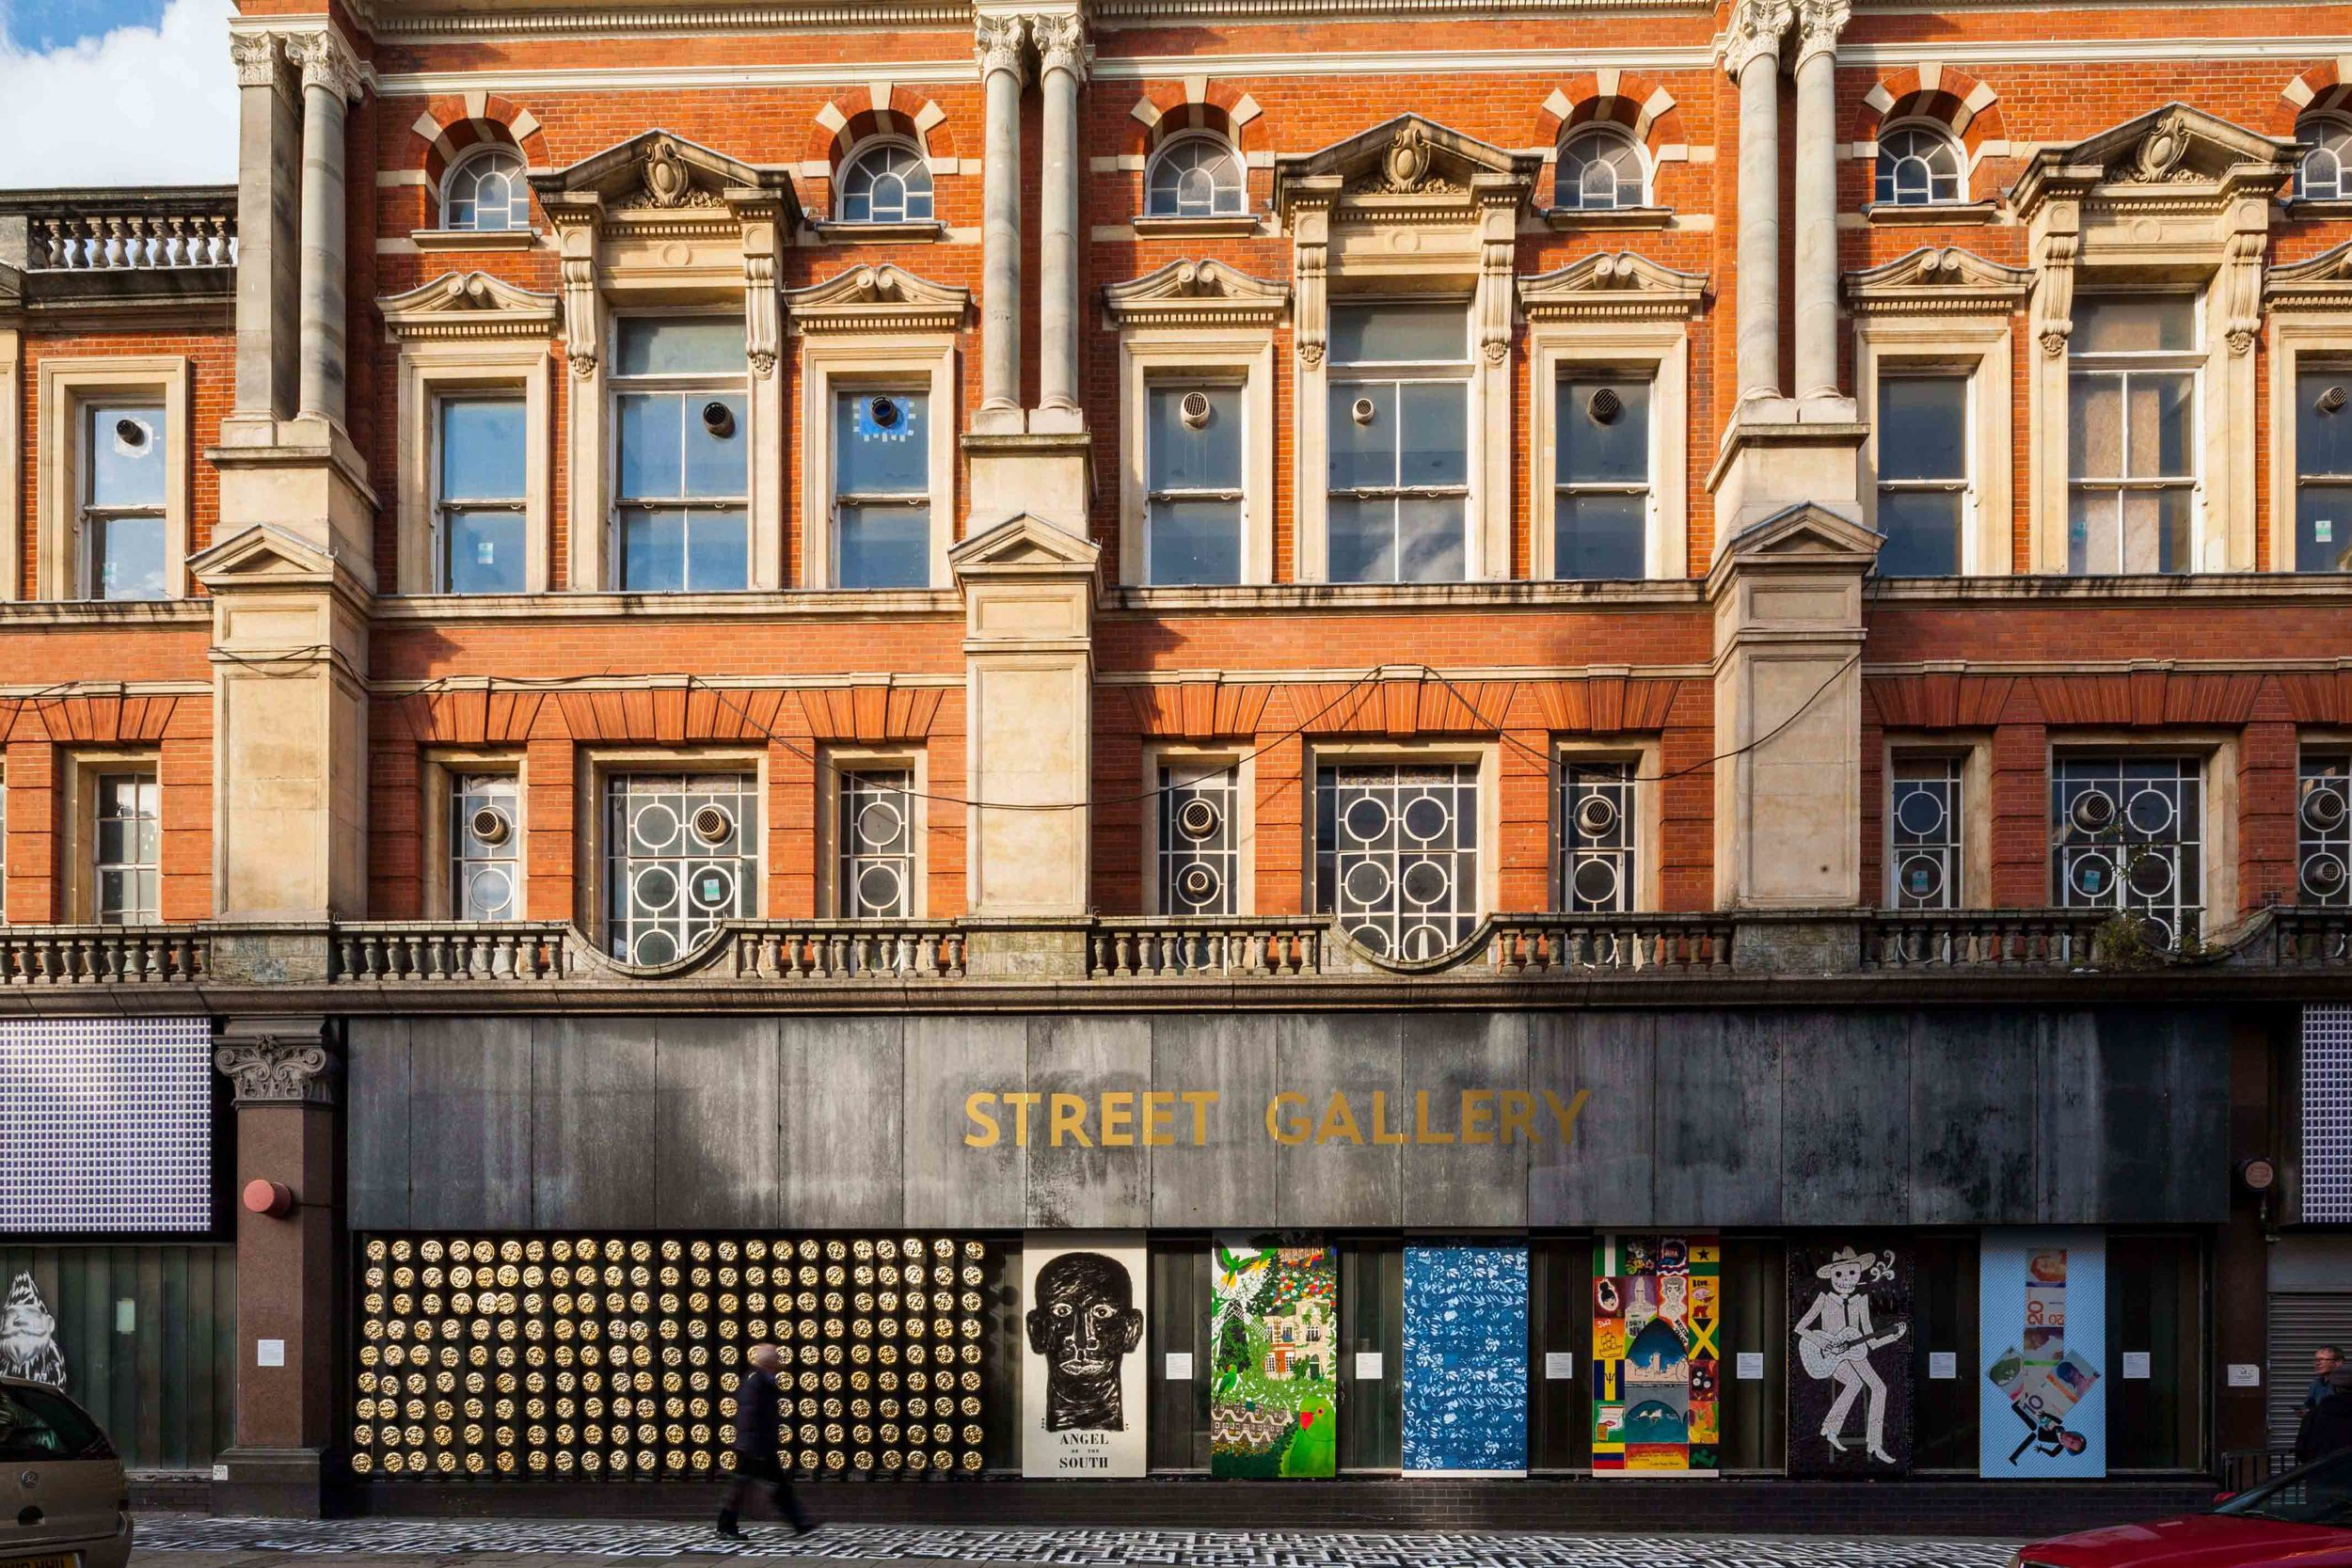 Brixton Street Gallery_Squire and Partners_01.jpg